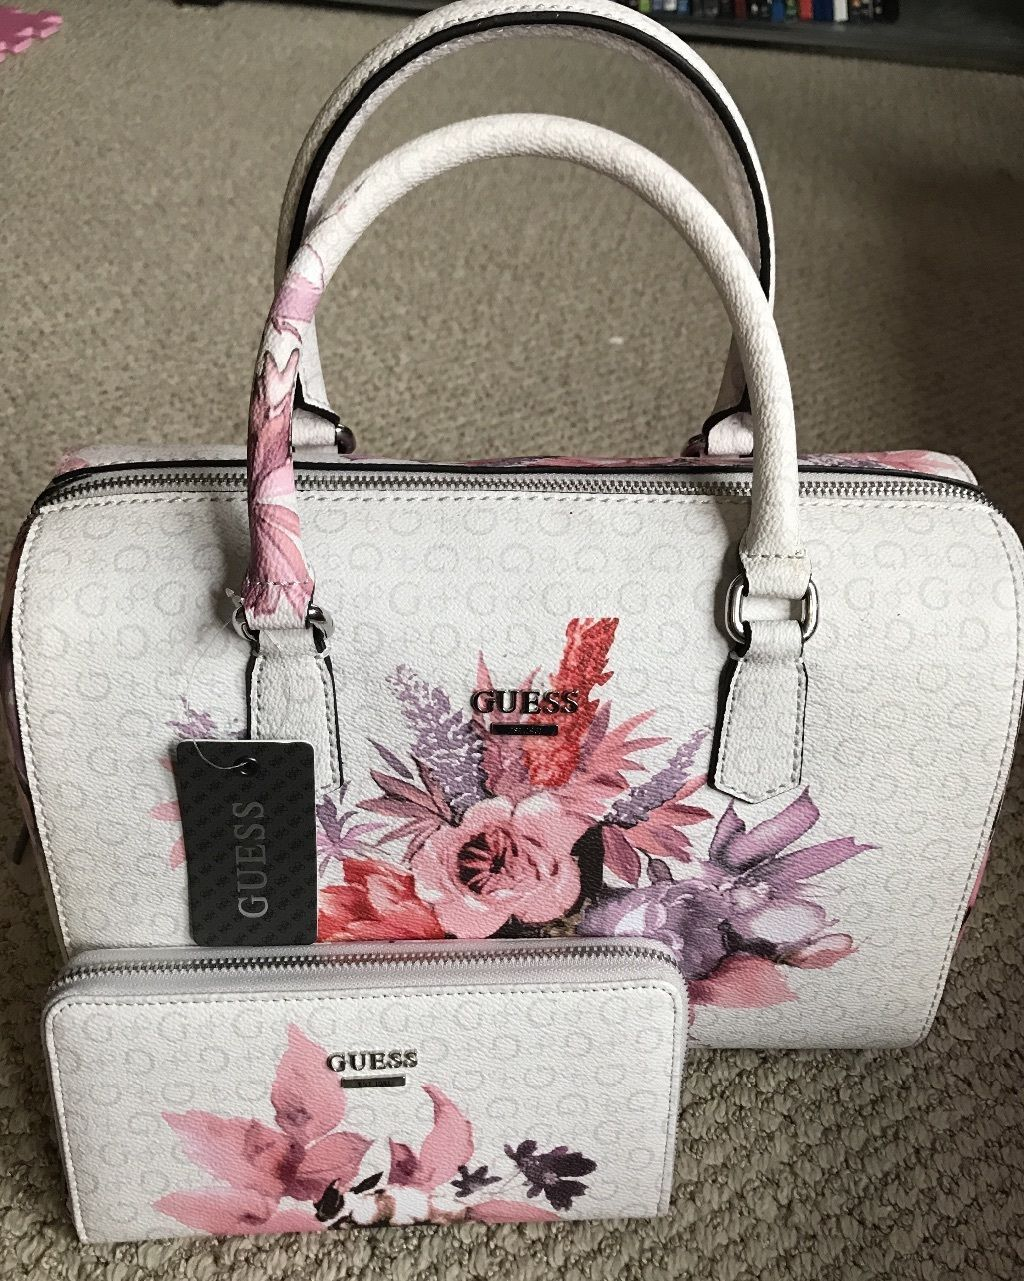 Guess ashville bag floral wallet set white pink rose box satchel guess ashville bag floral wallet set white pink rose box satchel tote logo purse guess purses mightylinksfo